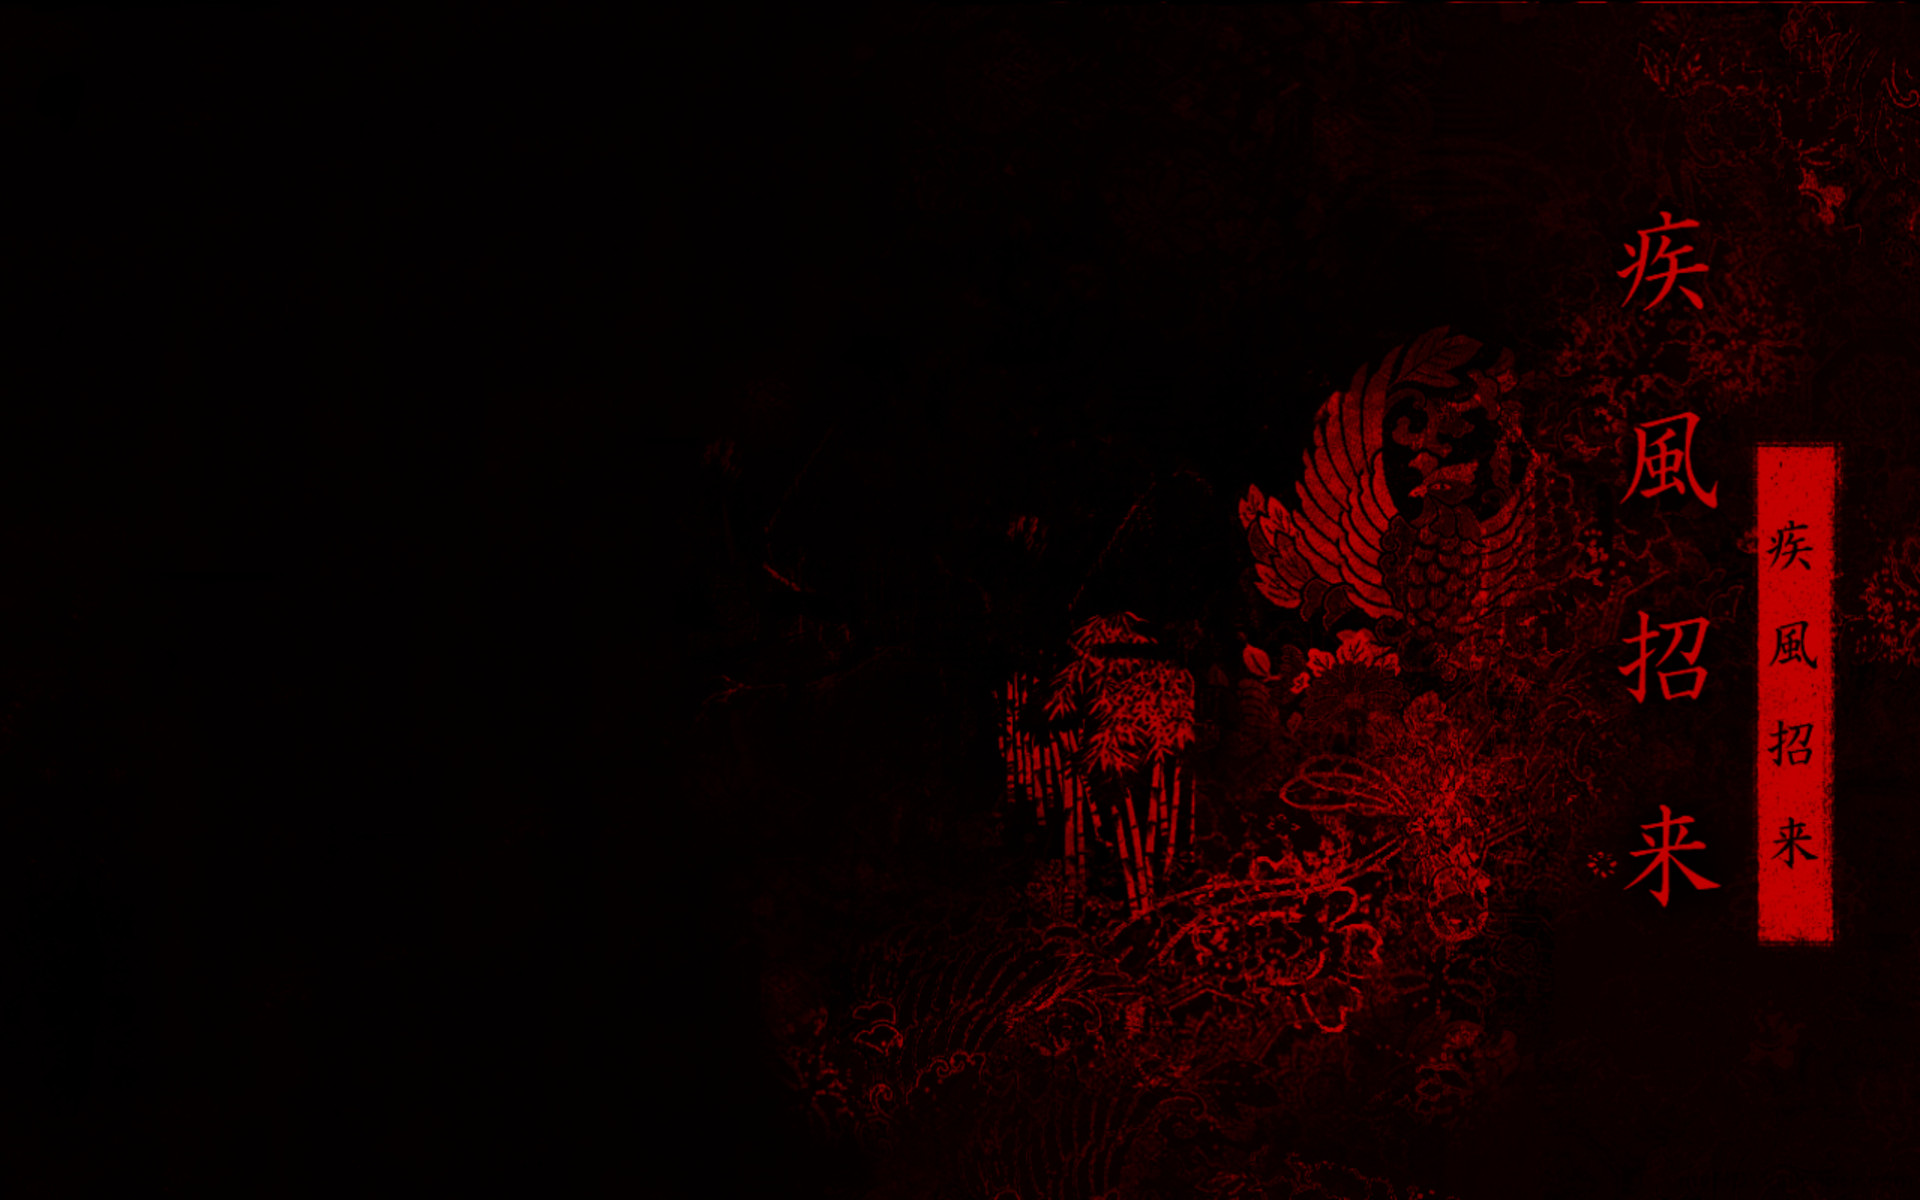 Dark Red Backgrounds 51 Images